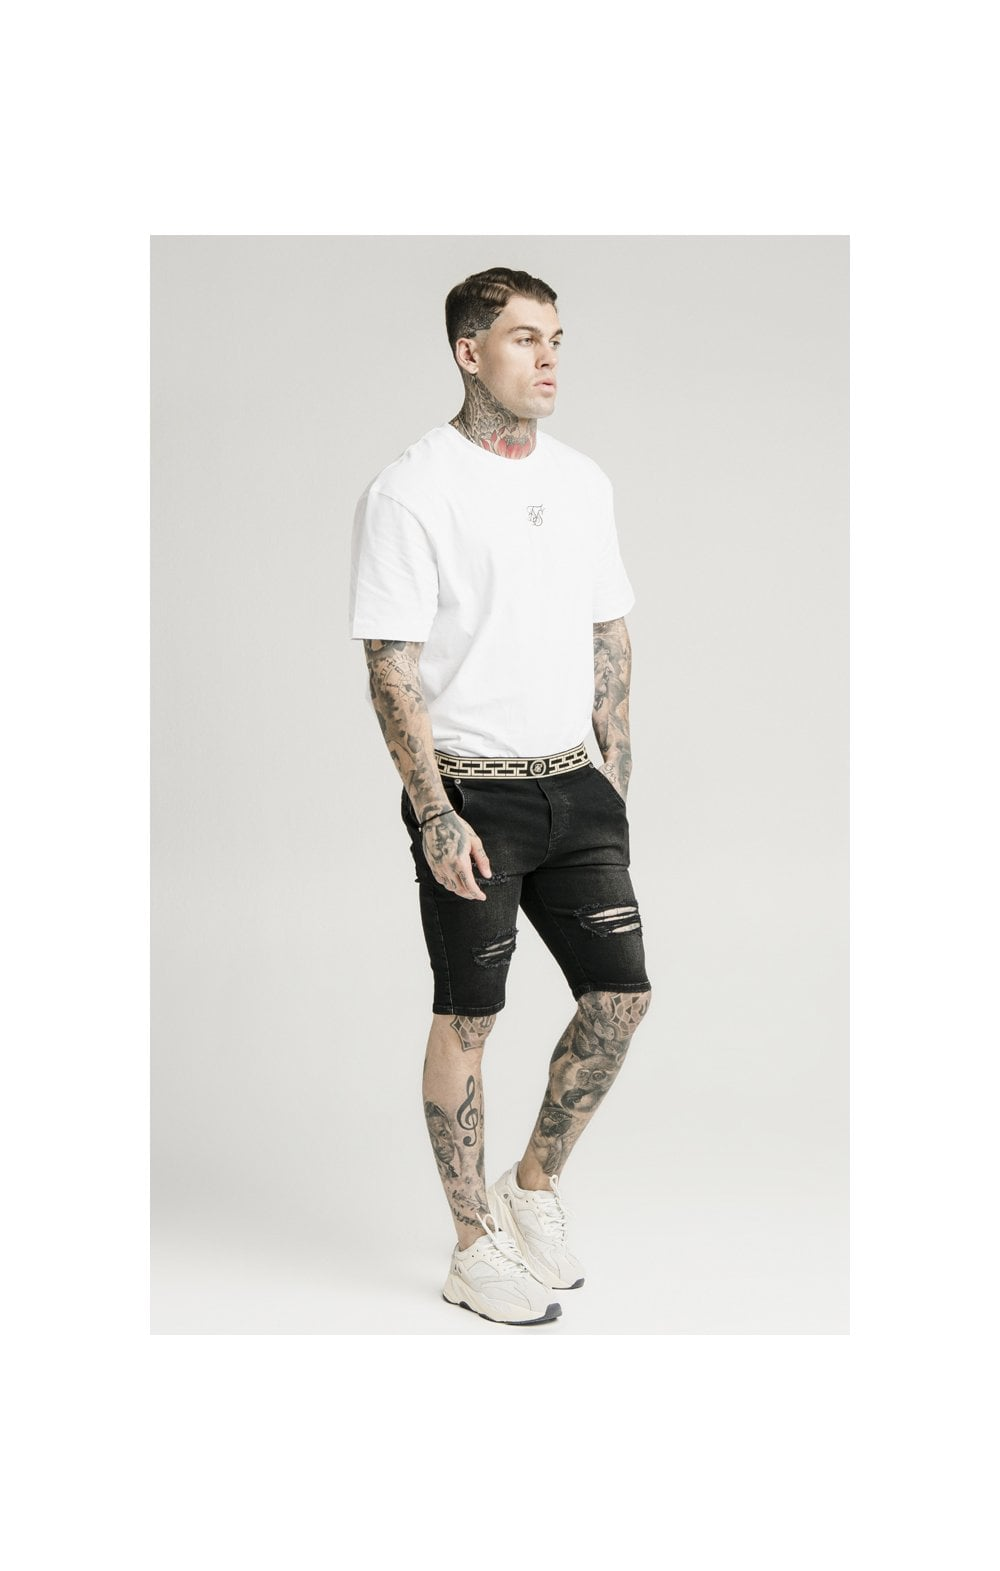 SikSilk Elasticated Waist Distressed Denim Shorts – Black (4)